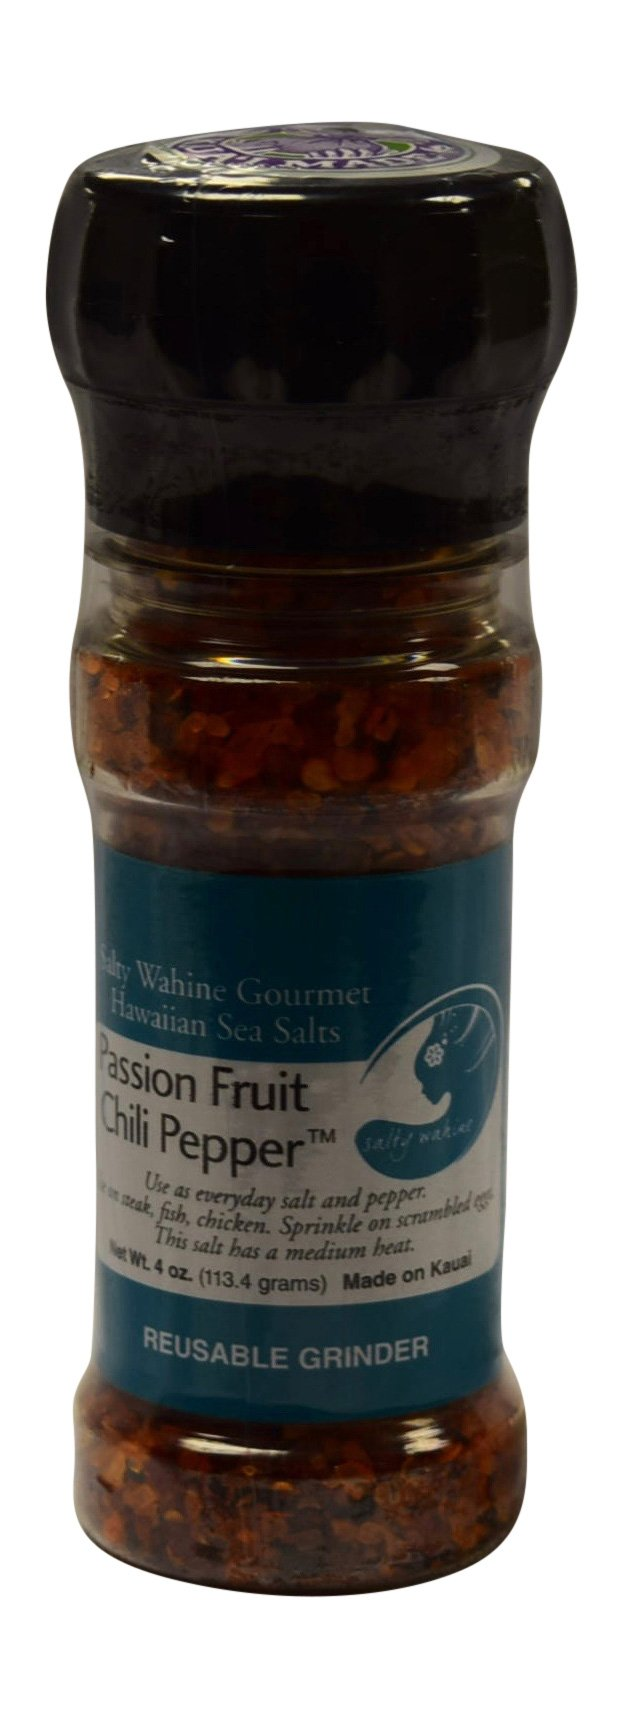 Salty Wahine Passion Fruit Chili Pepper